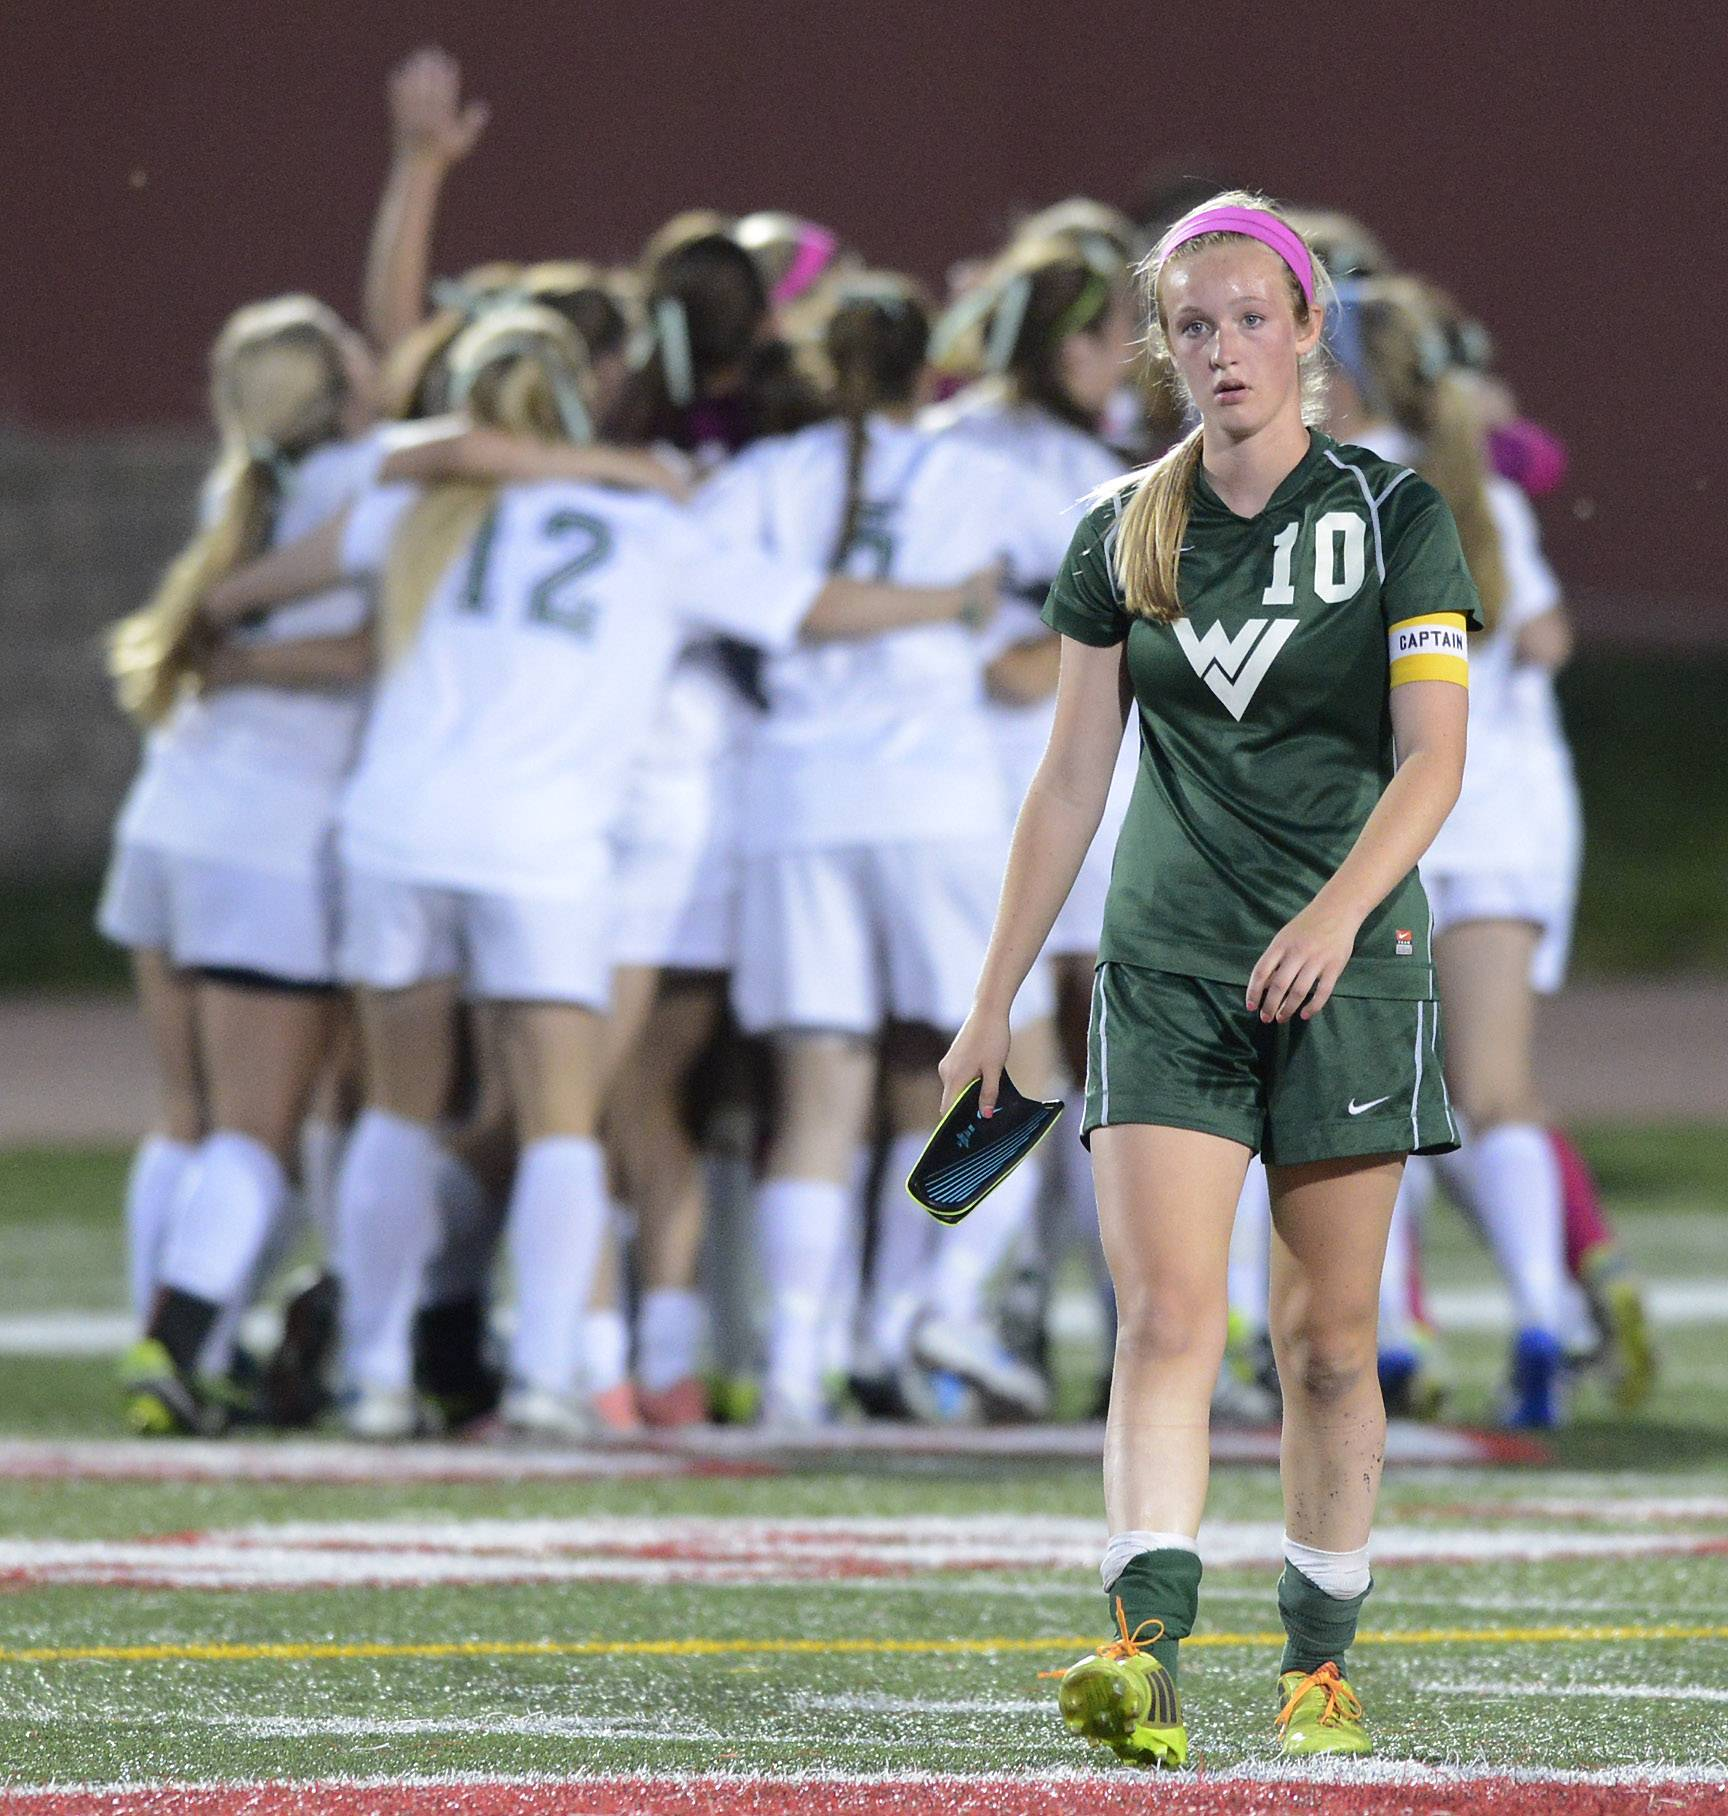 Waubonsie Valley's Mackenzie Fuller walks off the field as New Trier players celebrate their 1-0 win during the girls soccer Class 3A state semifinal at North Central College in Naperville Friday.